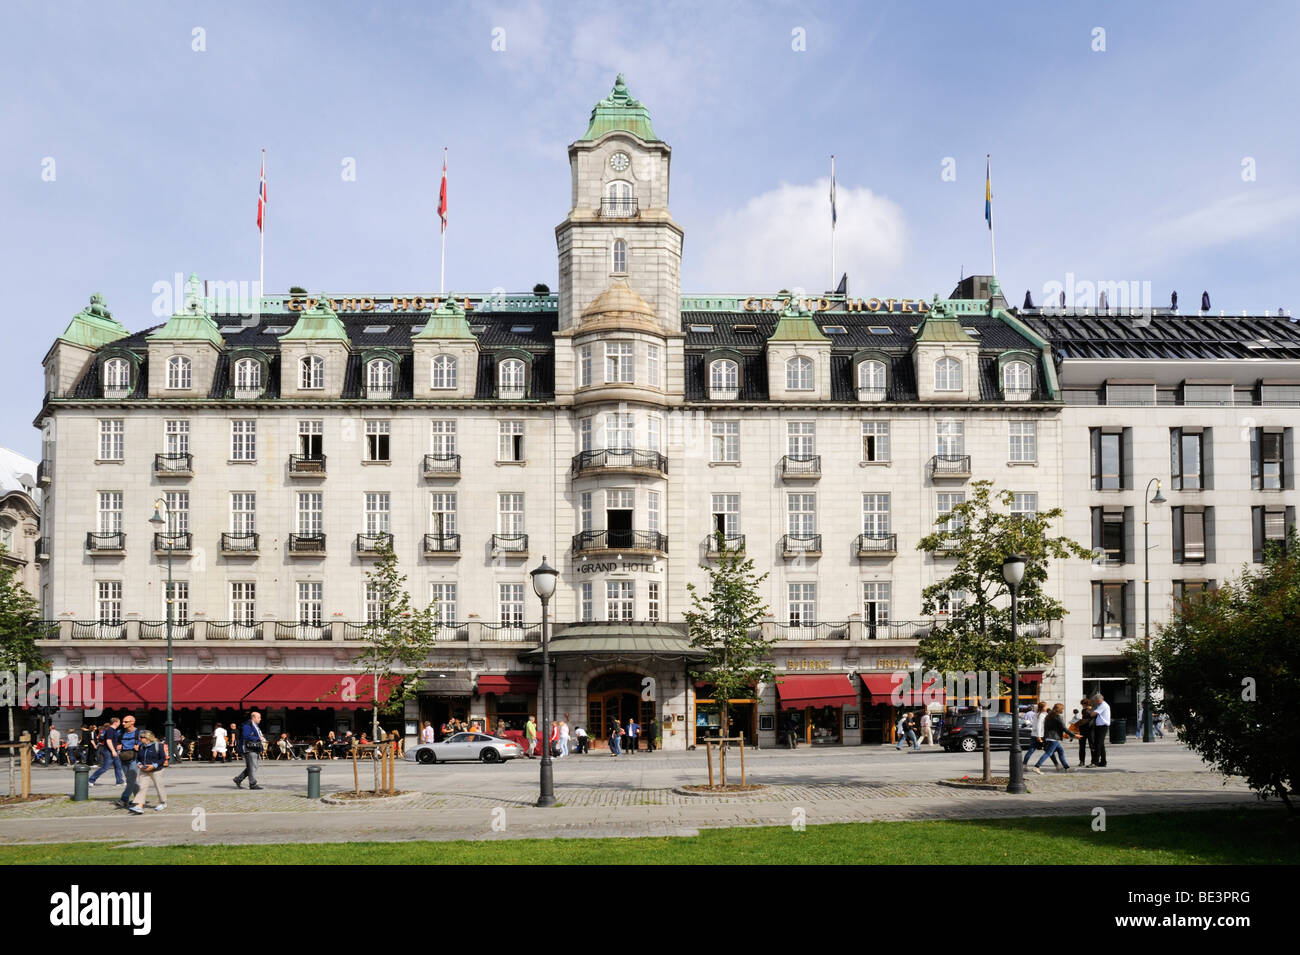 Grand Hotel and Grand Cafe at Karl Johans Gate, Oslo, Norway, Scandinavia, Northern Europe - Stock Image